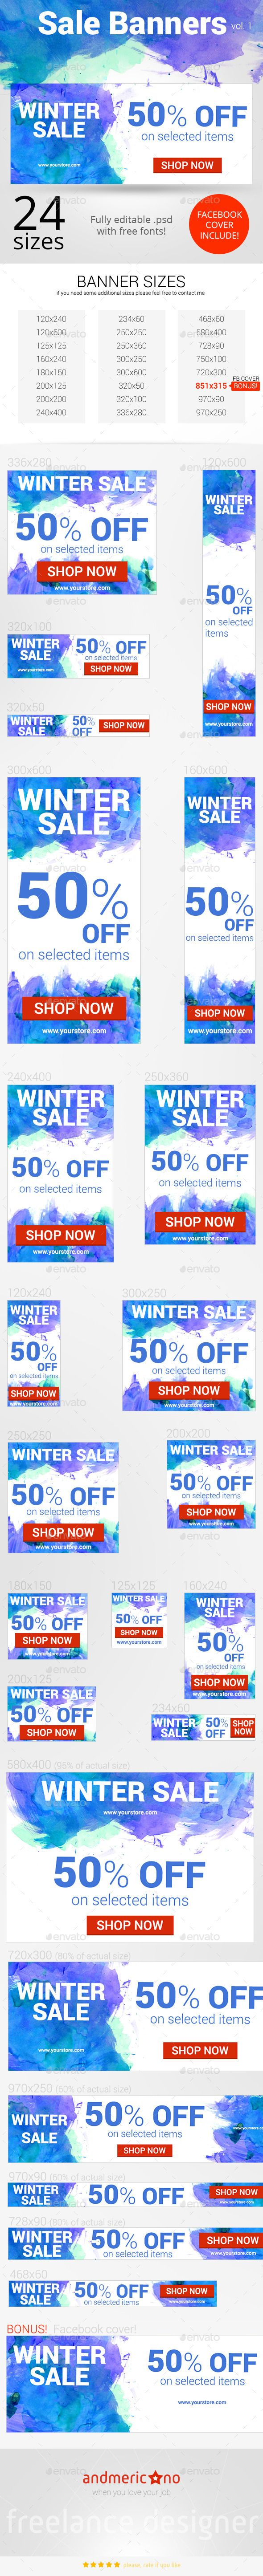 Big Sale Banners Set Template PSD | Download: graphicriver.net/…